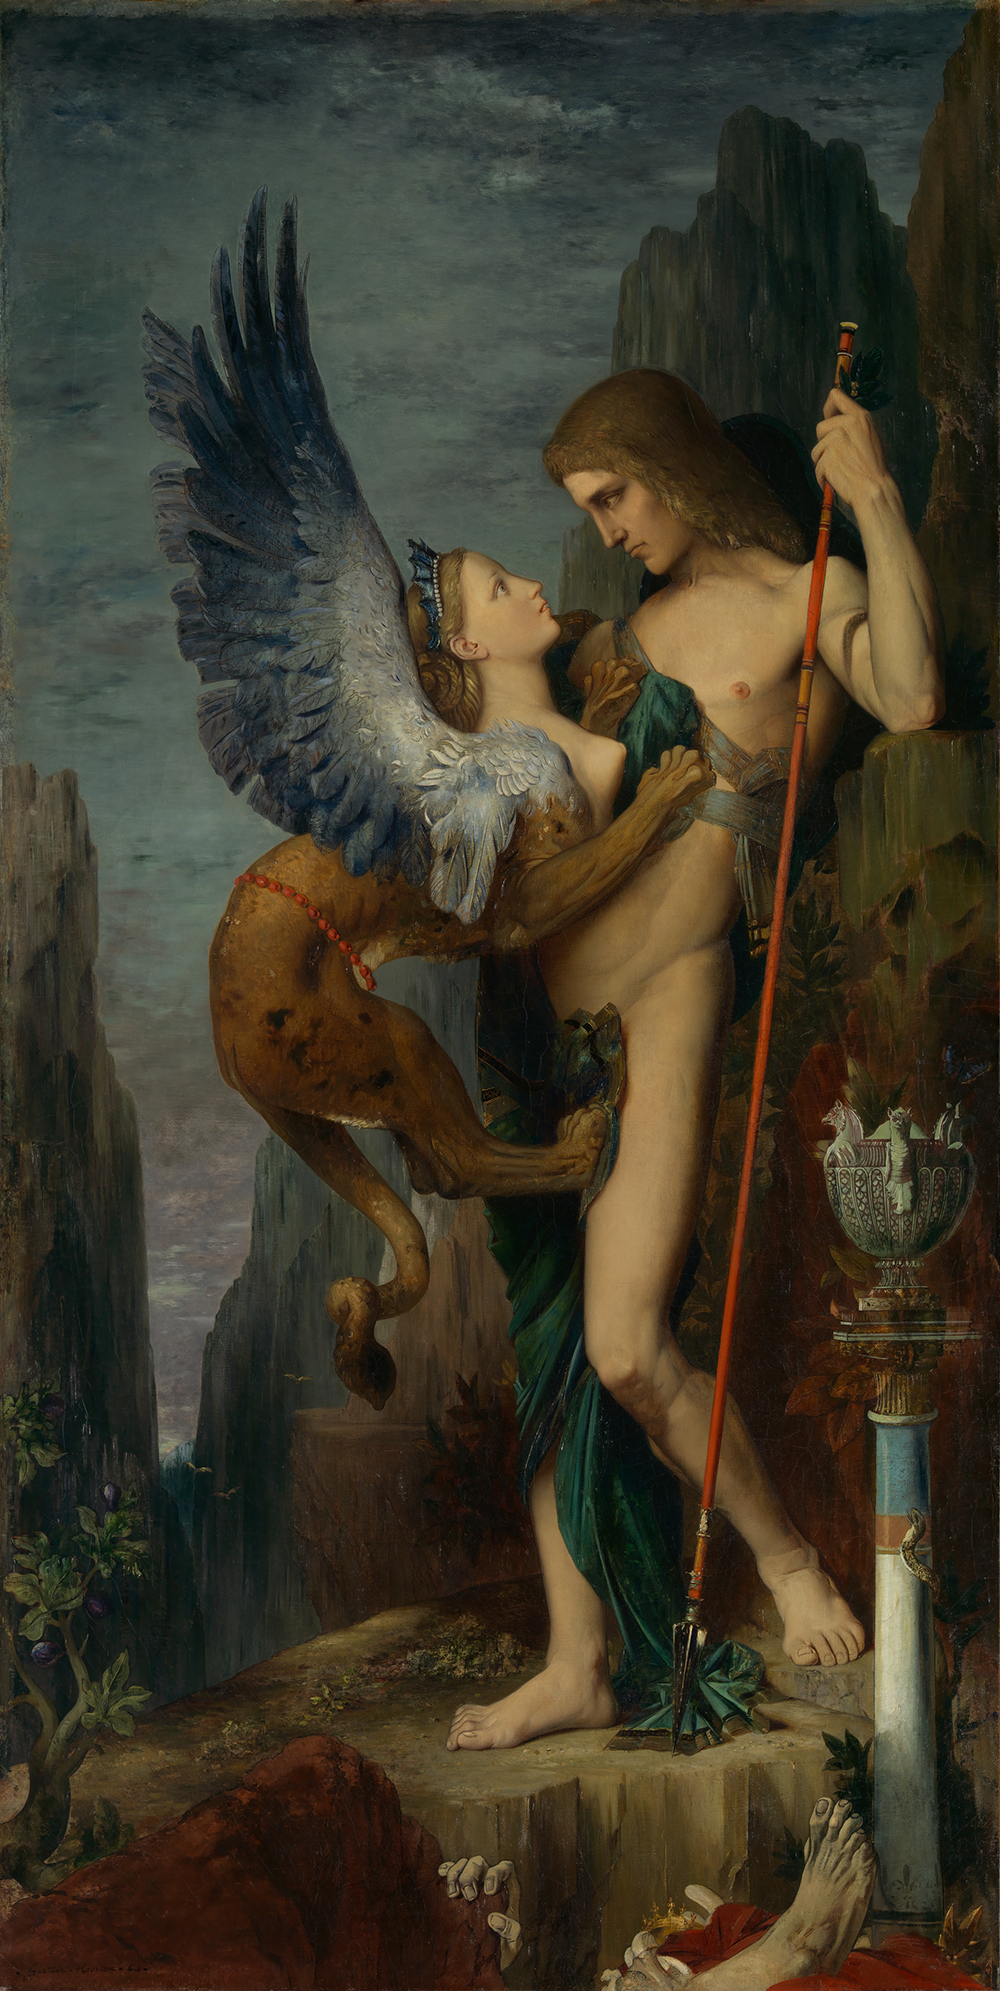 """""""Oedipus and the Sphinx,"""" by Gustave Moreau, 1864. The Metroplitan Museum of Art, Bequest of William H. Herriman, 1920."""